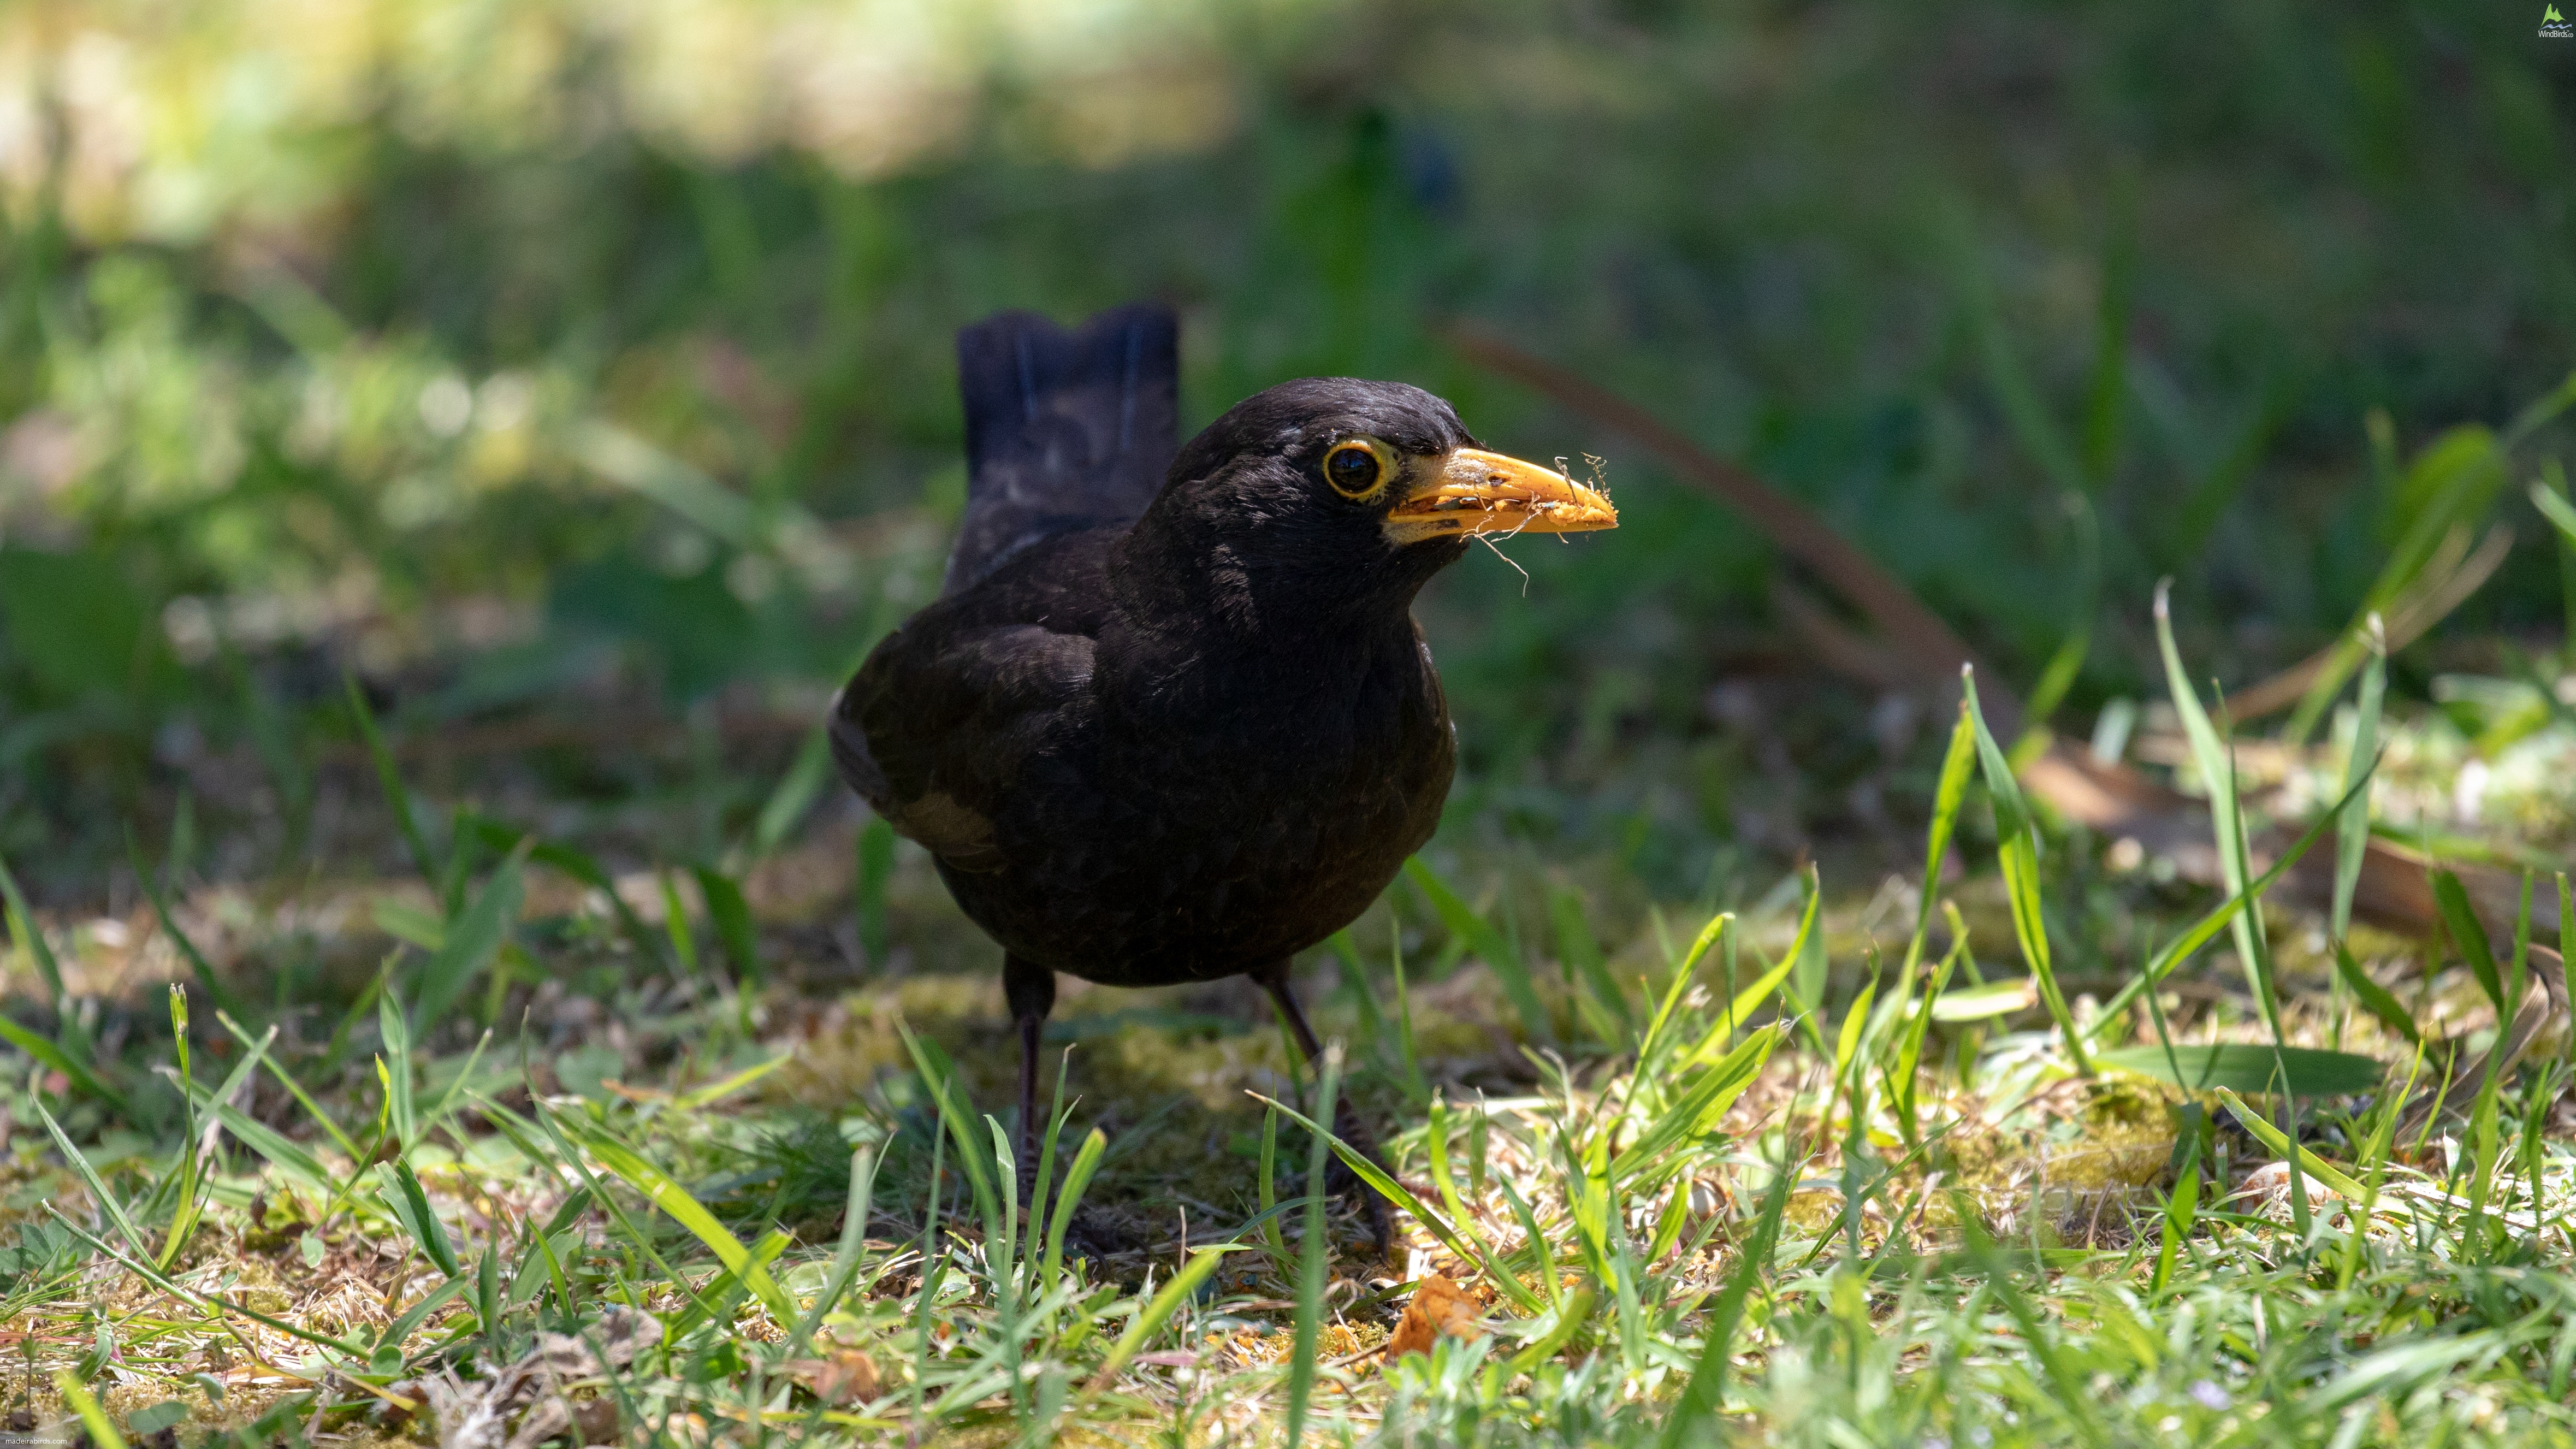 Common Blackbird Turdus merula cabrerae